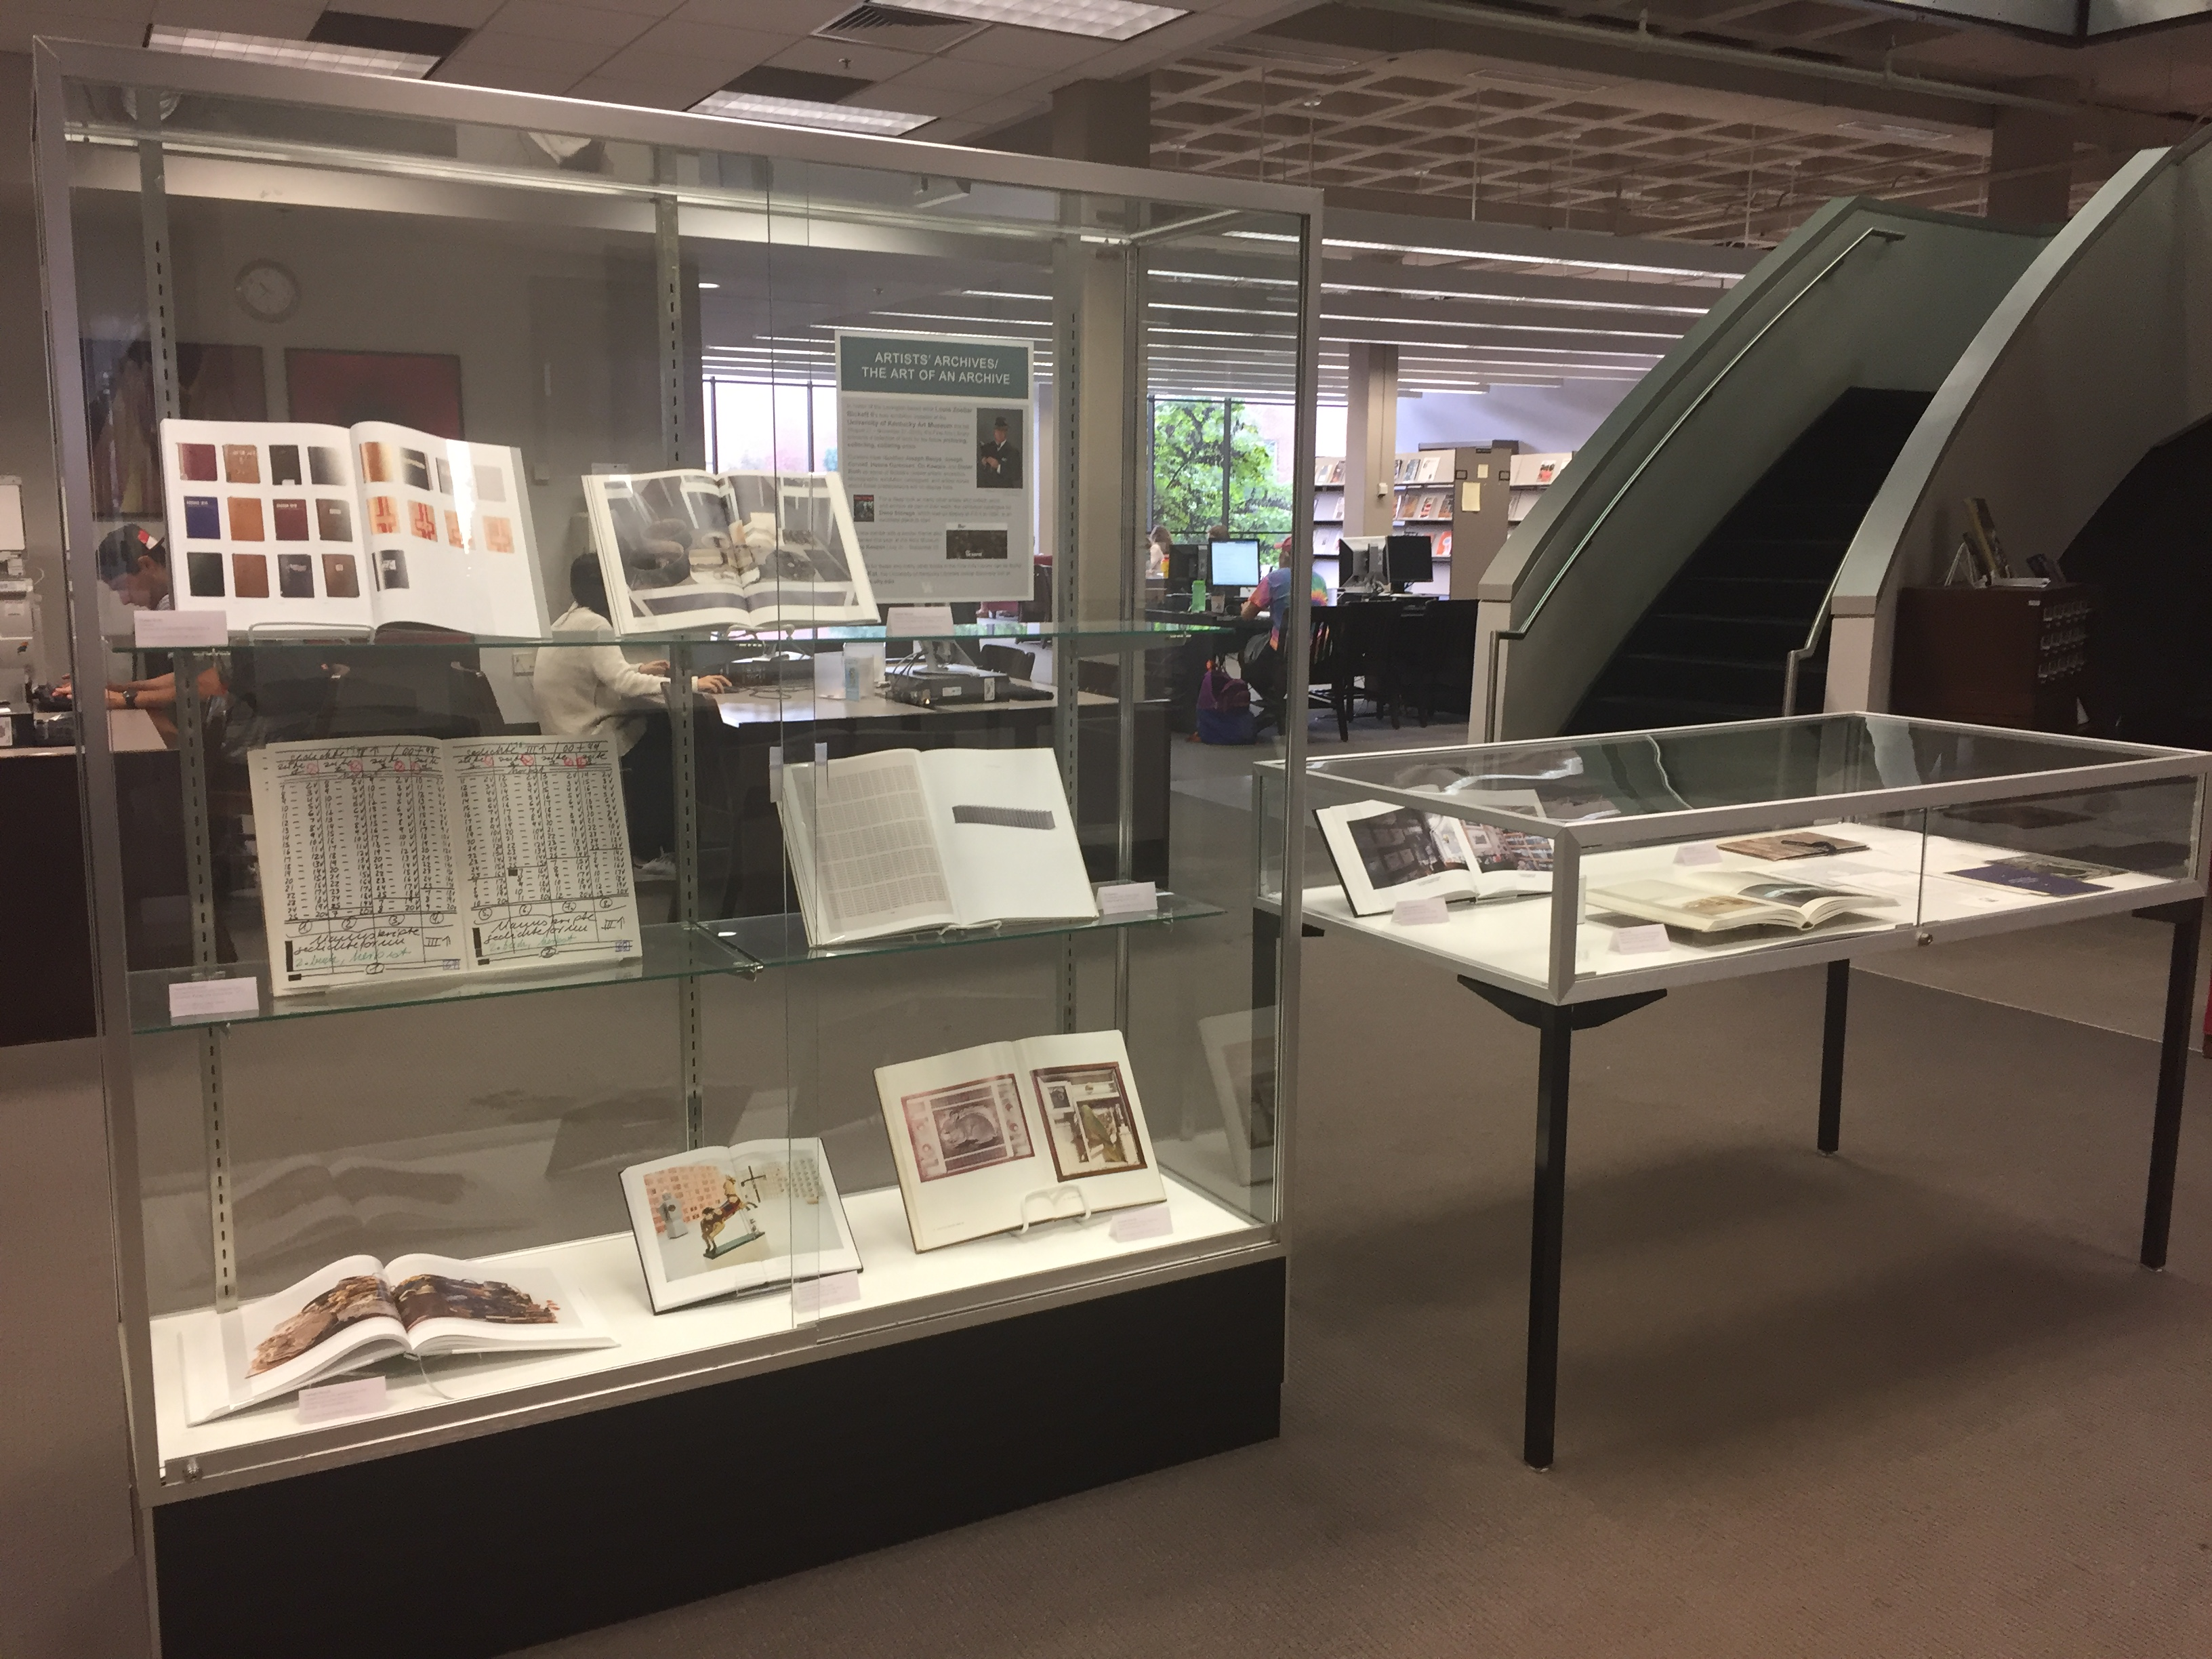 Fine Arts Library display cases